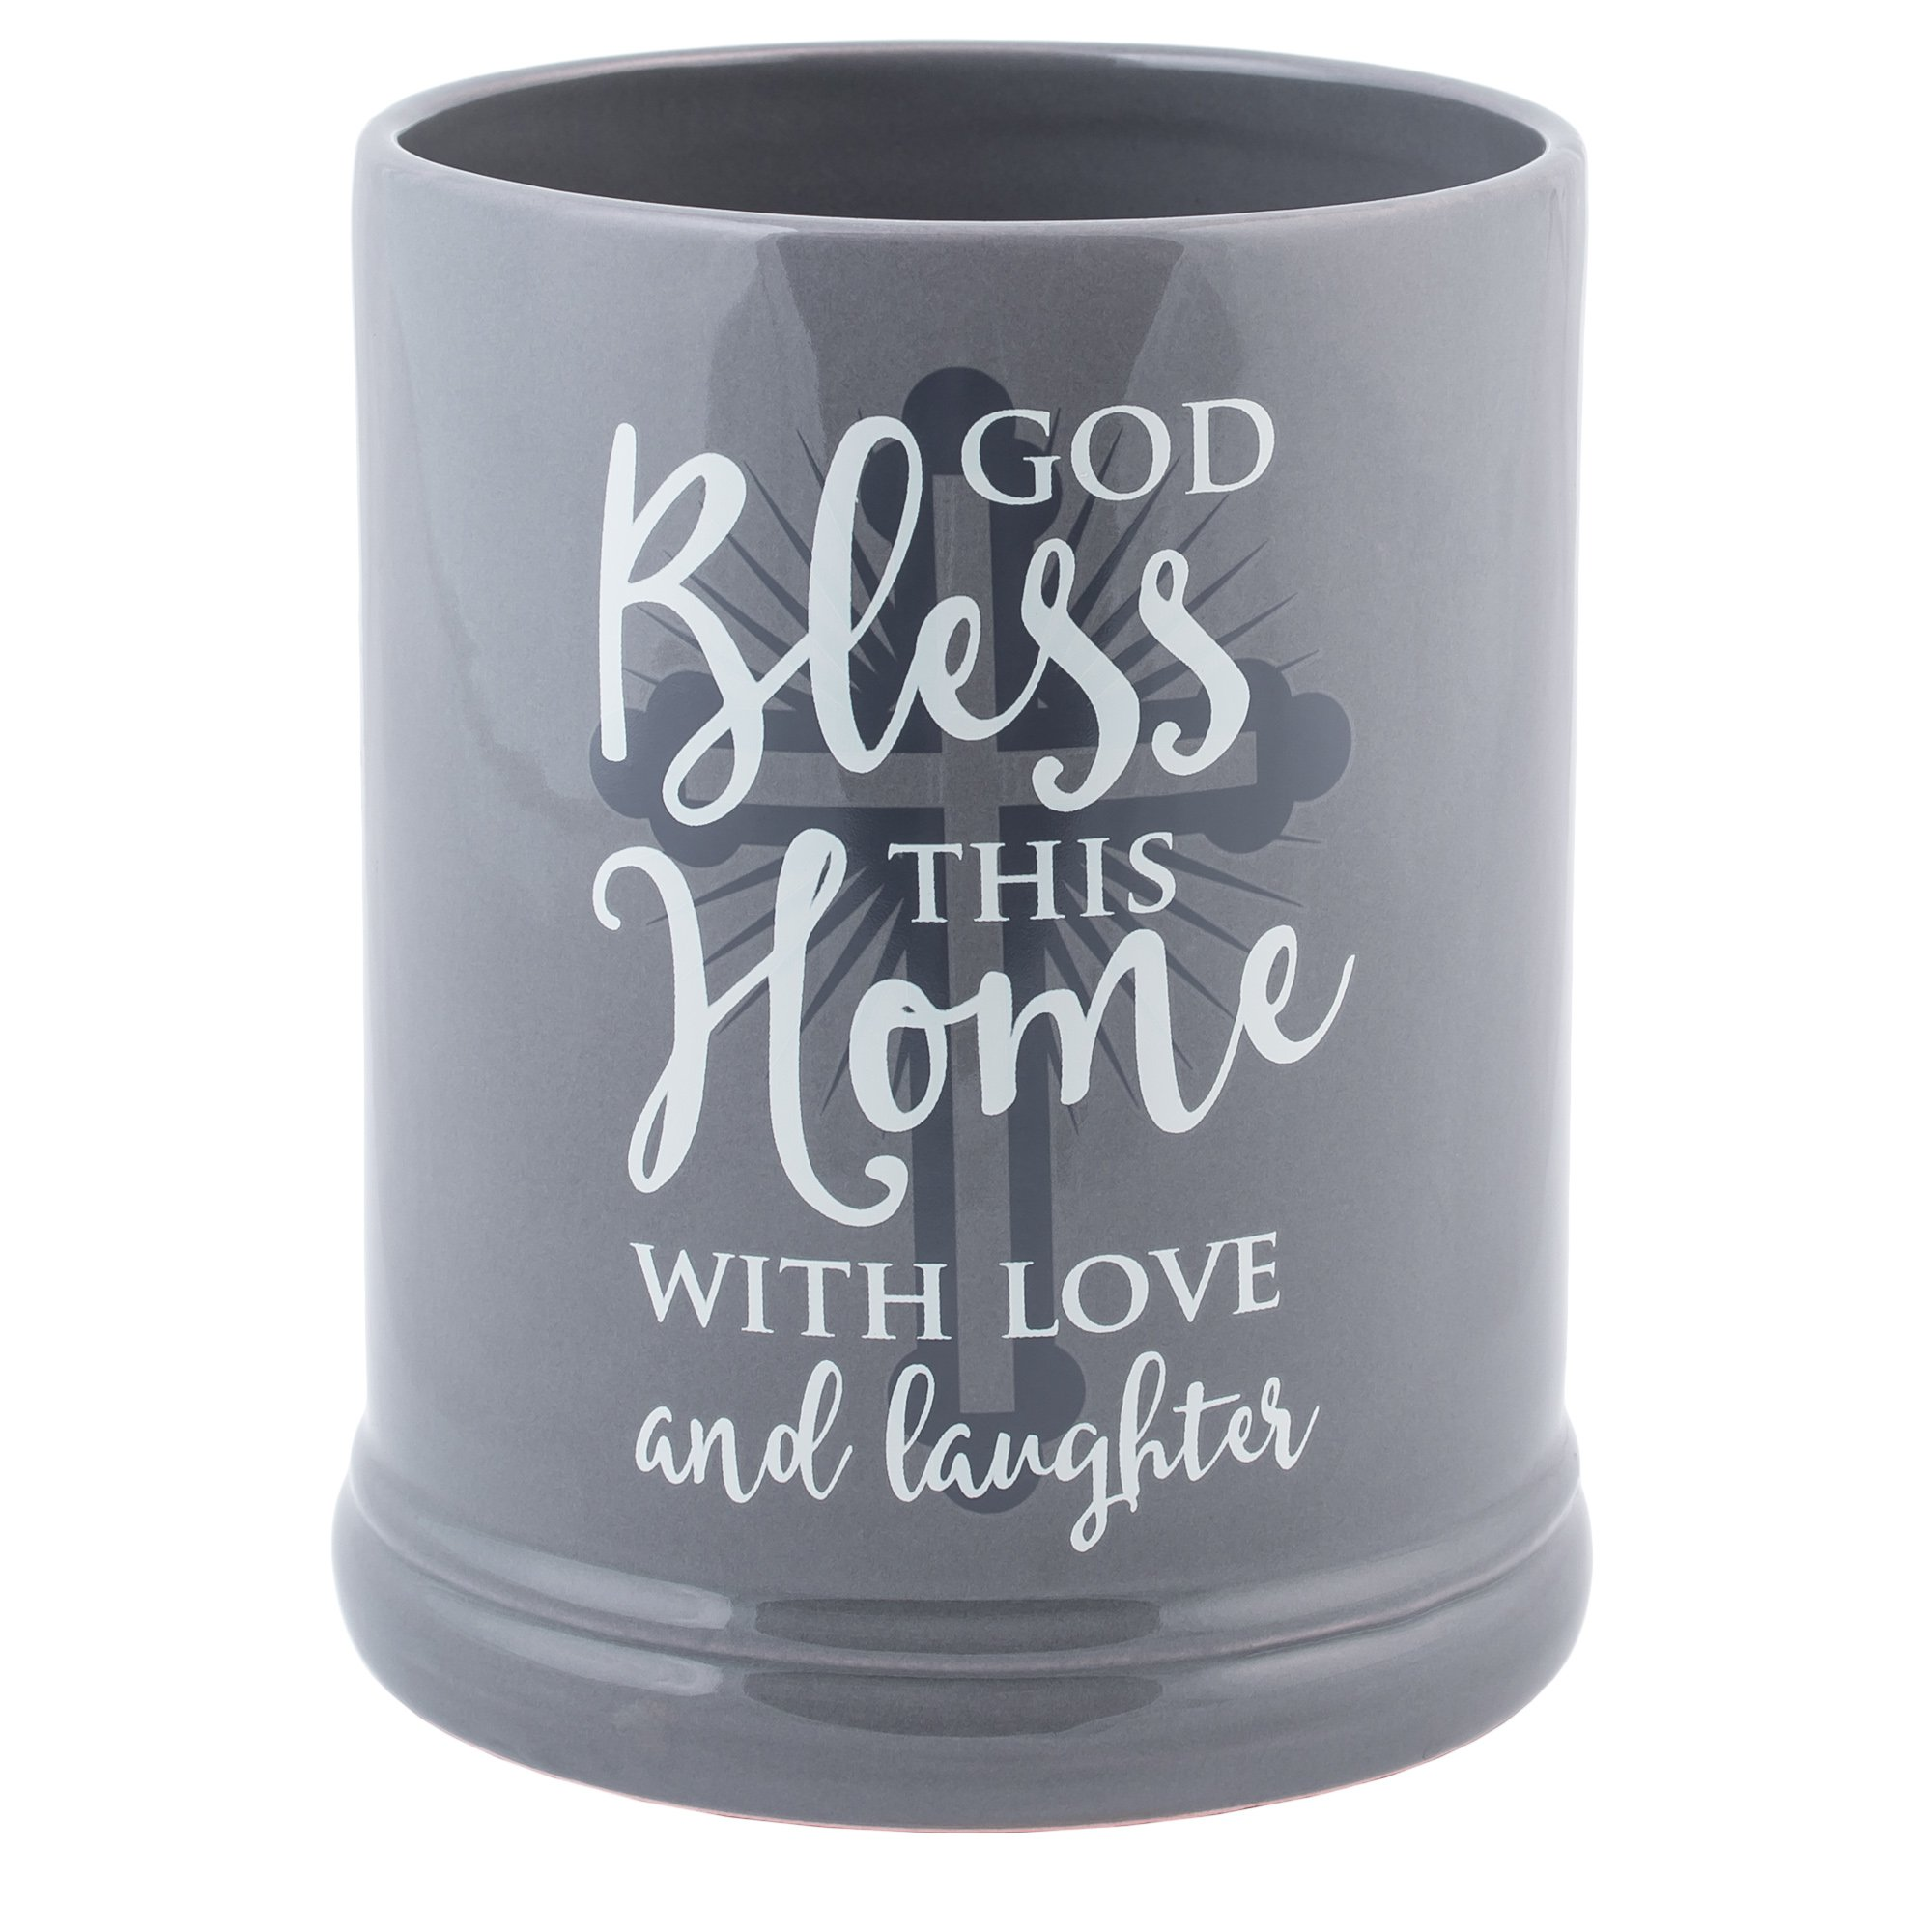 Elanze Designs God Bless This Home with Love Grey Stoneware Electric Jar Candle Warmer by Elanze Designs